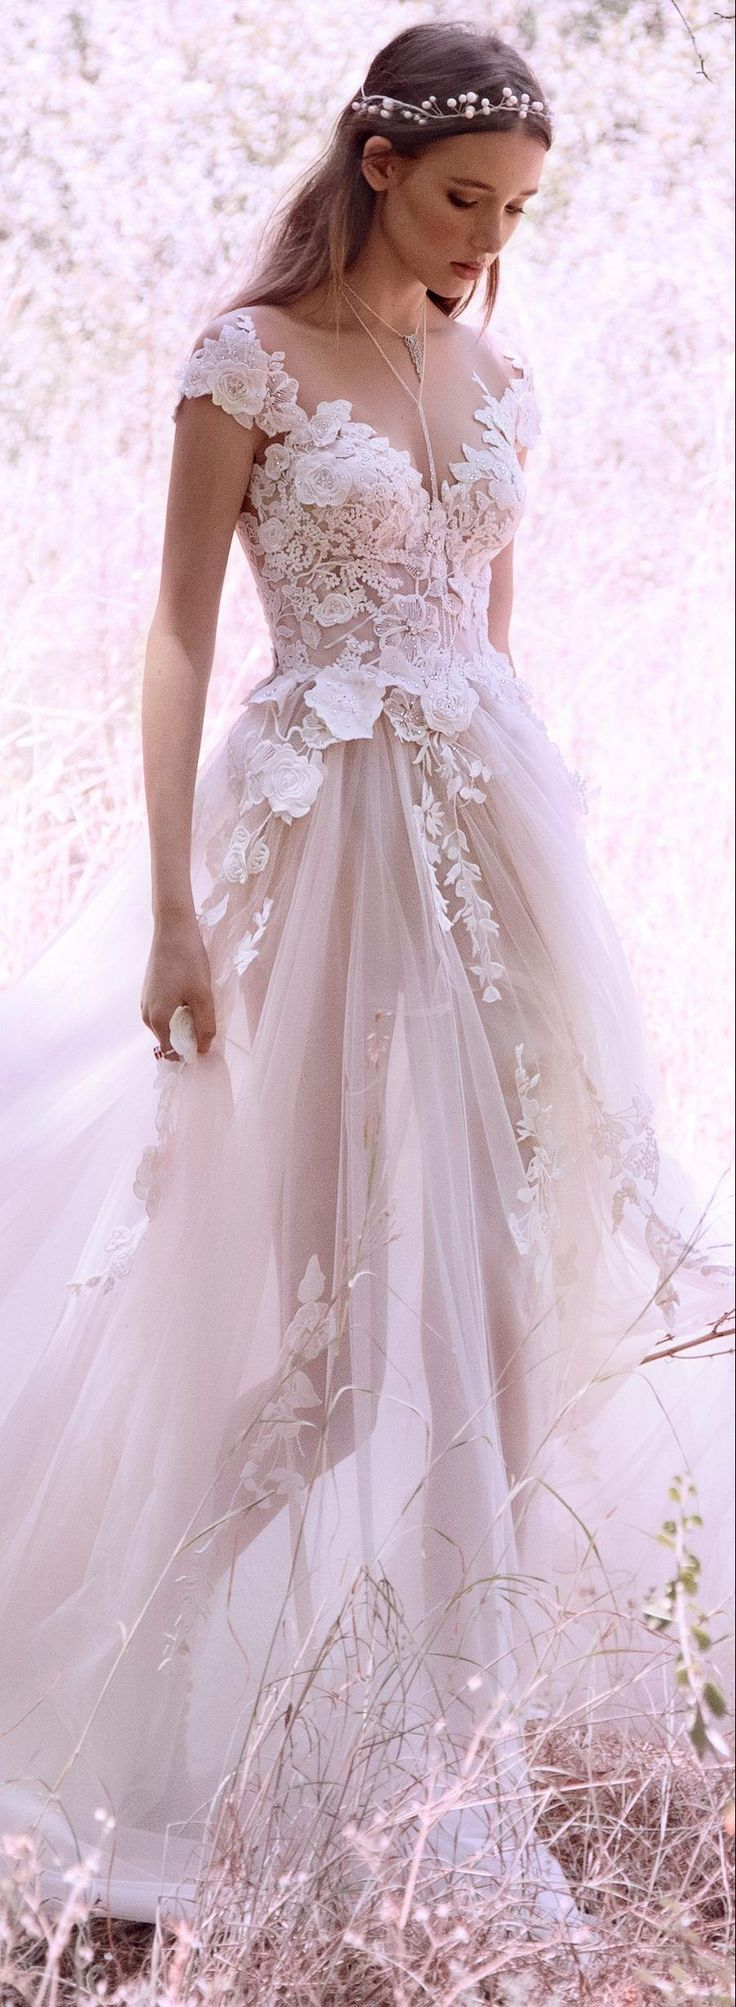 Boho brides rejoice and get ready for some impossibly beautiful wedding dresses